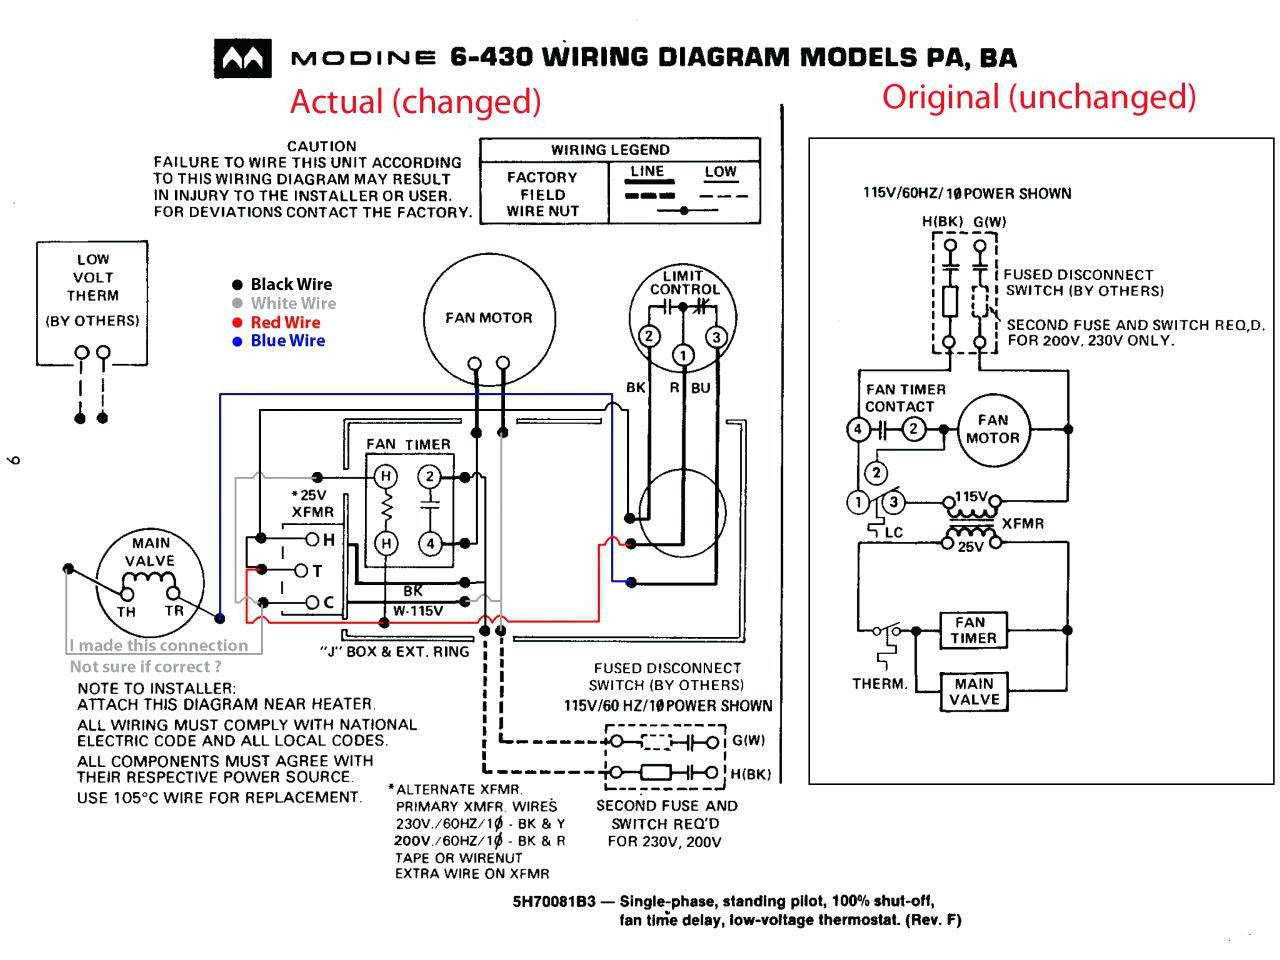 Full Size of Universal Condenser Fan Motor Wiring Diagram Amazing 3 Speed Ideas Electrical Furnace Blower